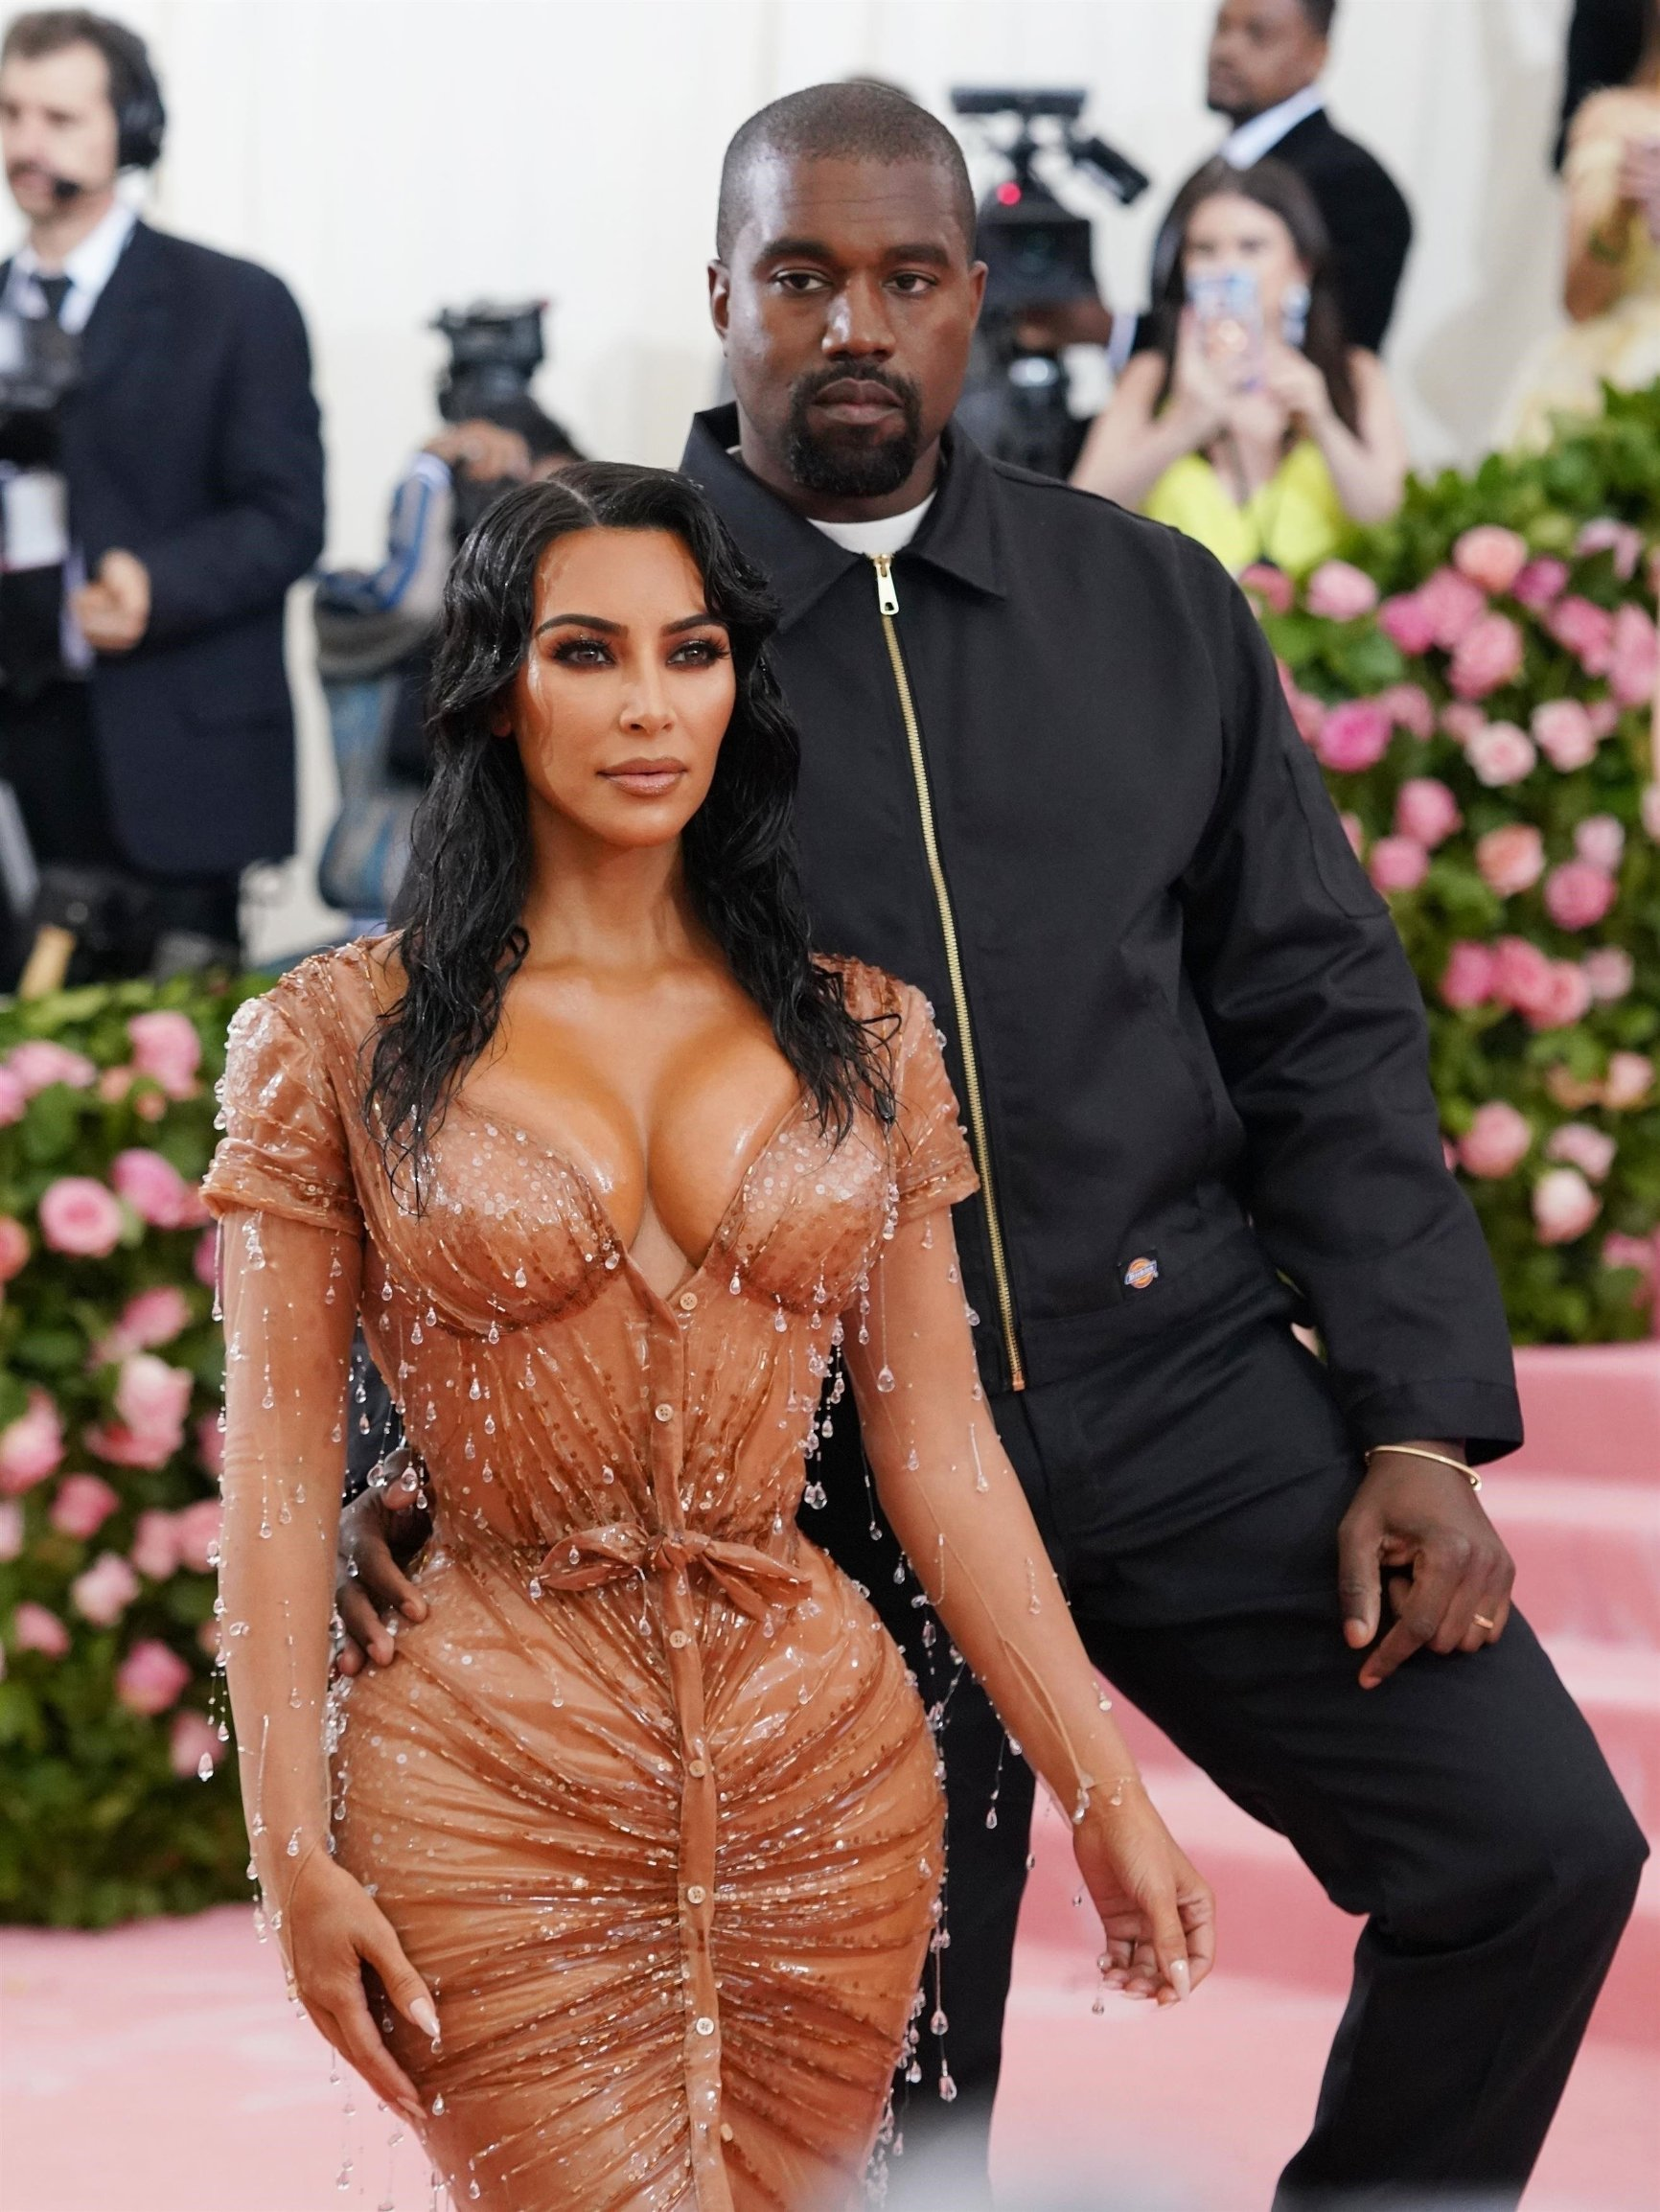 New York, NY  - Celebrities strike a pose as they step out for the Met Gala in New York.  Pictured: Kim Kardashian, Kanye West    *UK Clients - Pictures Containing Children Please Pixelate Face Prior To Publication*, Image: 431343332, License: Rights-managed, Restrictions: , Model Release: no, Credit line: Profimedia, Backgrid USA